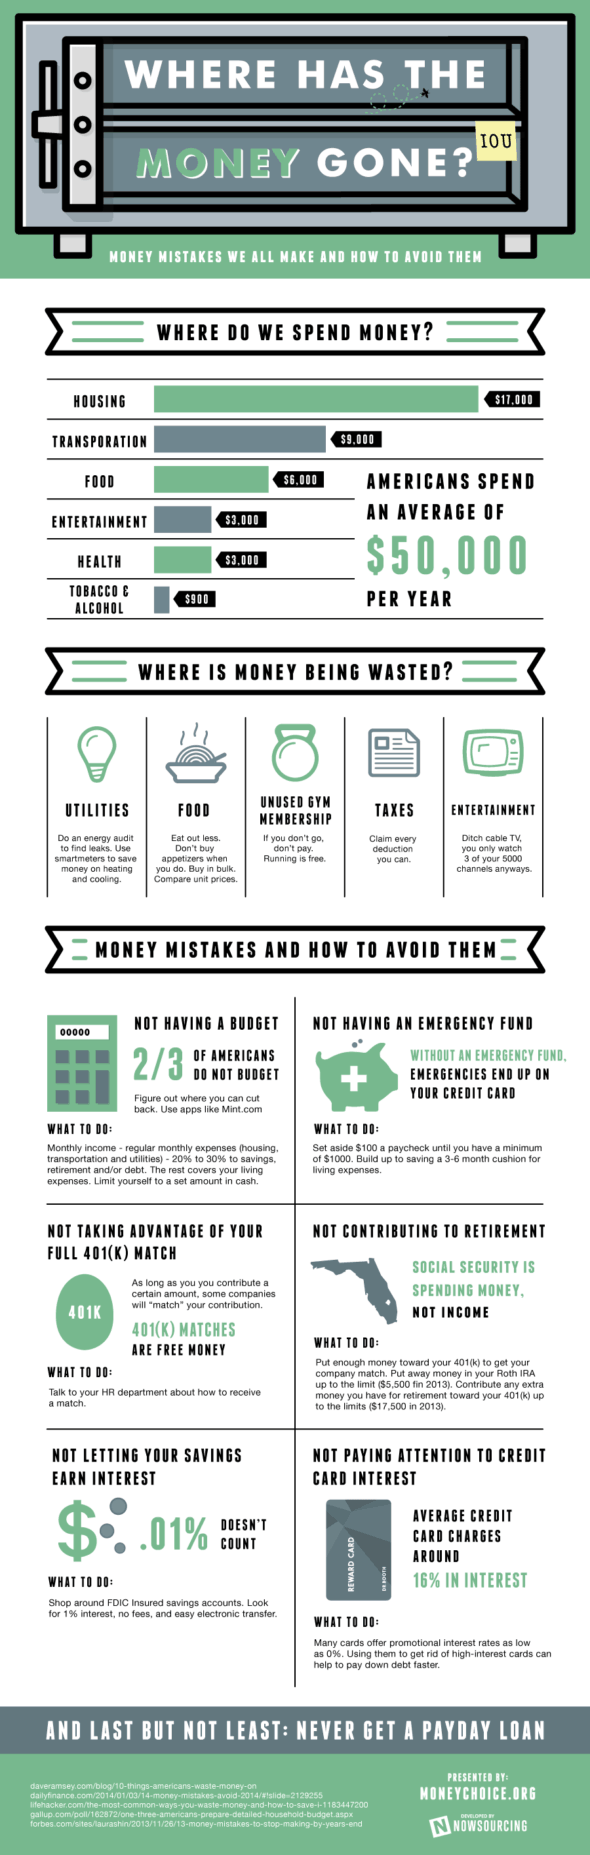 Infographic: Where Has All The Money Gone?